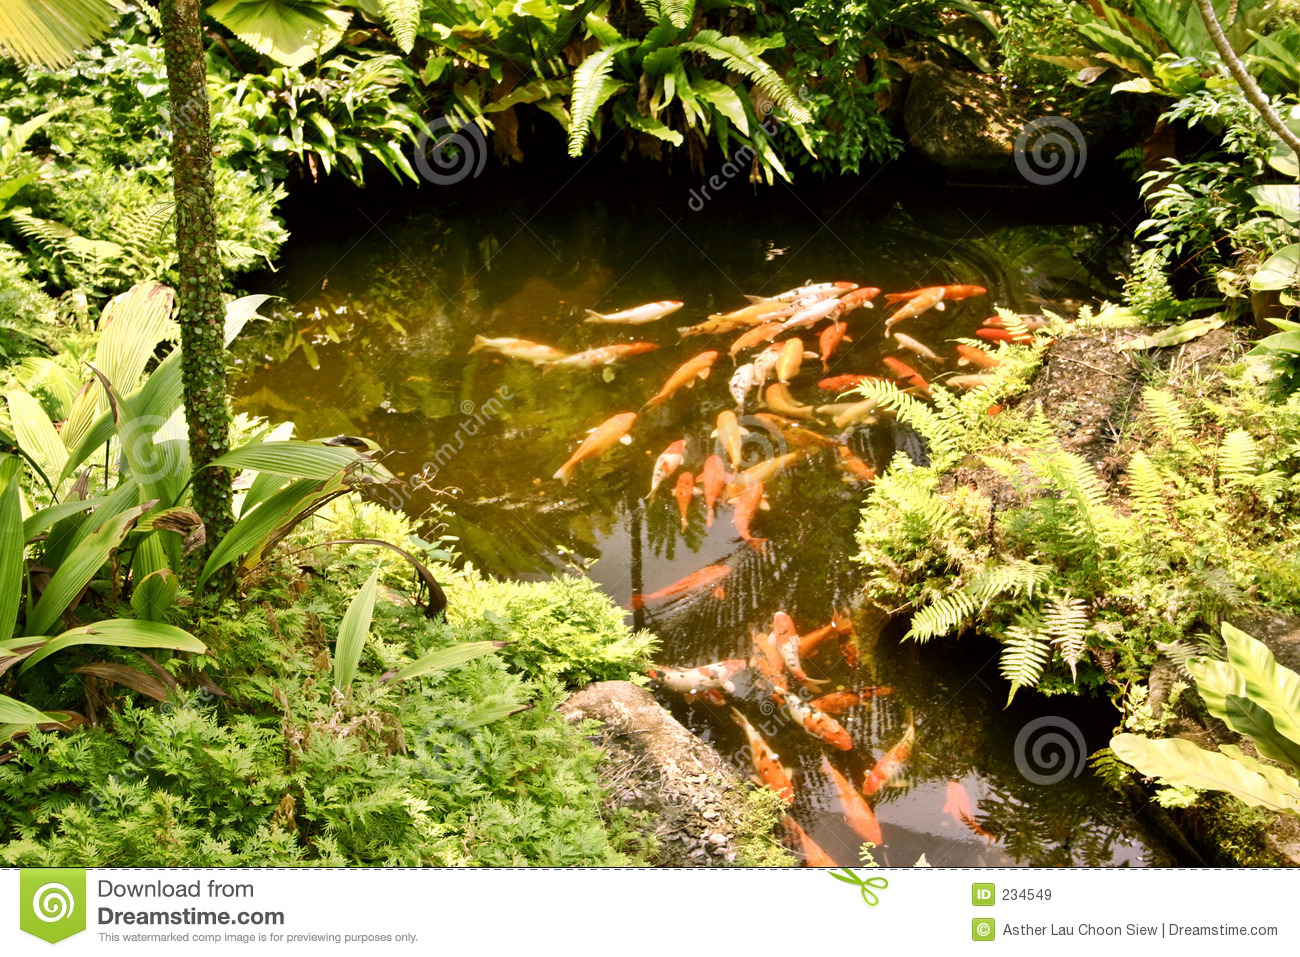 Koi carp in pond stock image image of water fish for Decorative pond fish